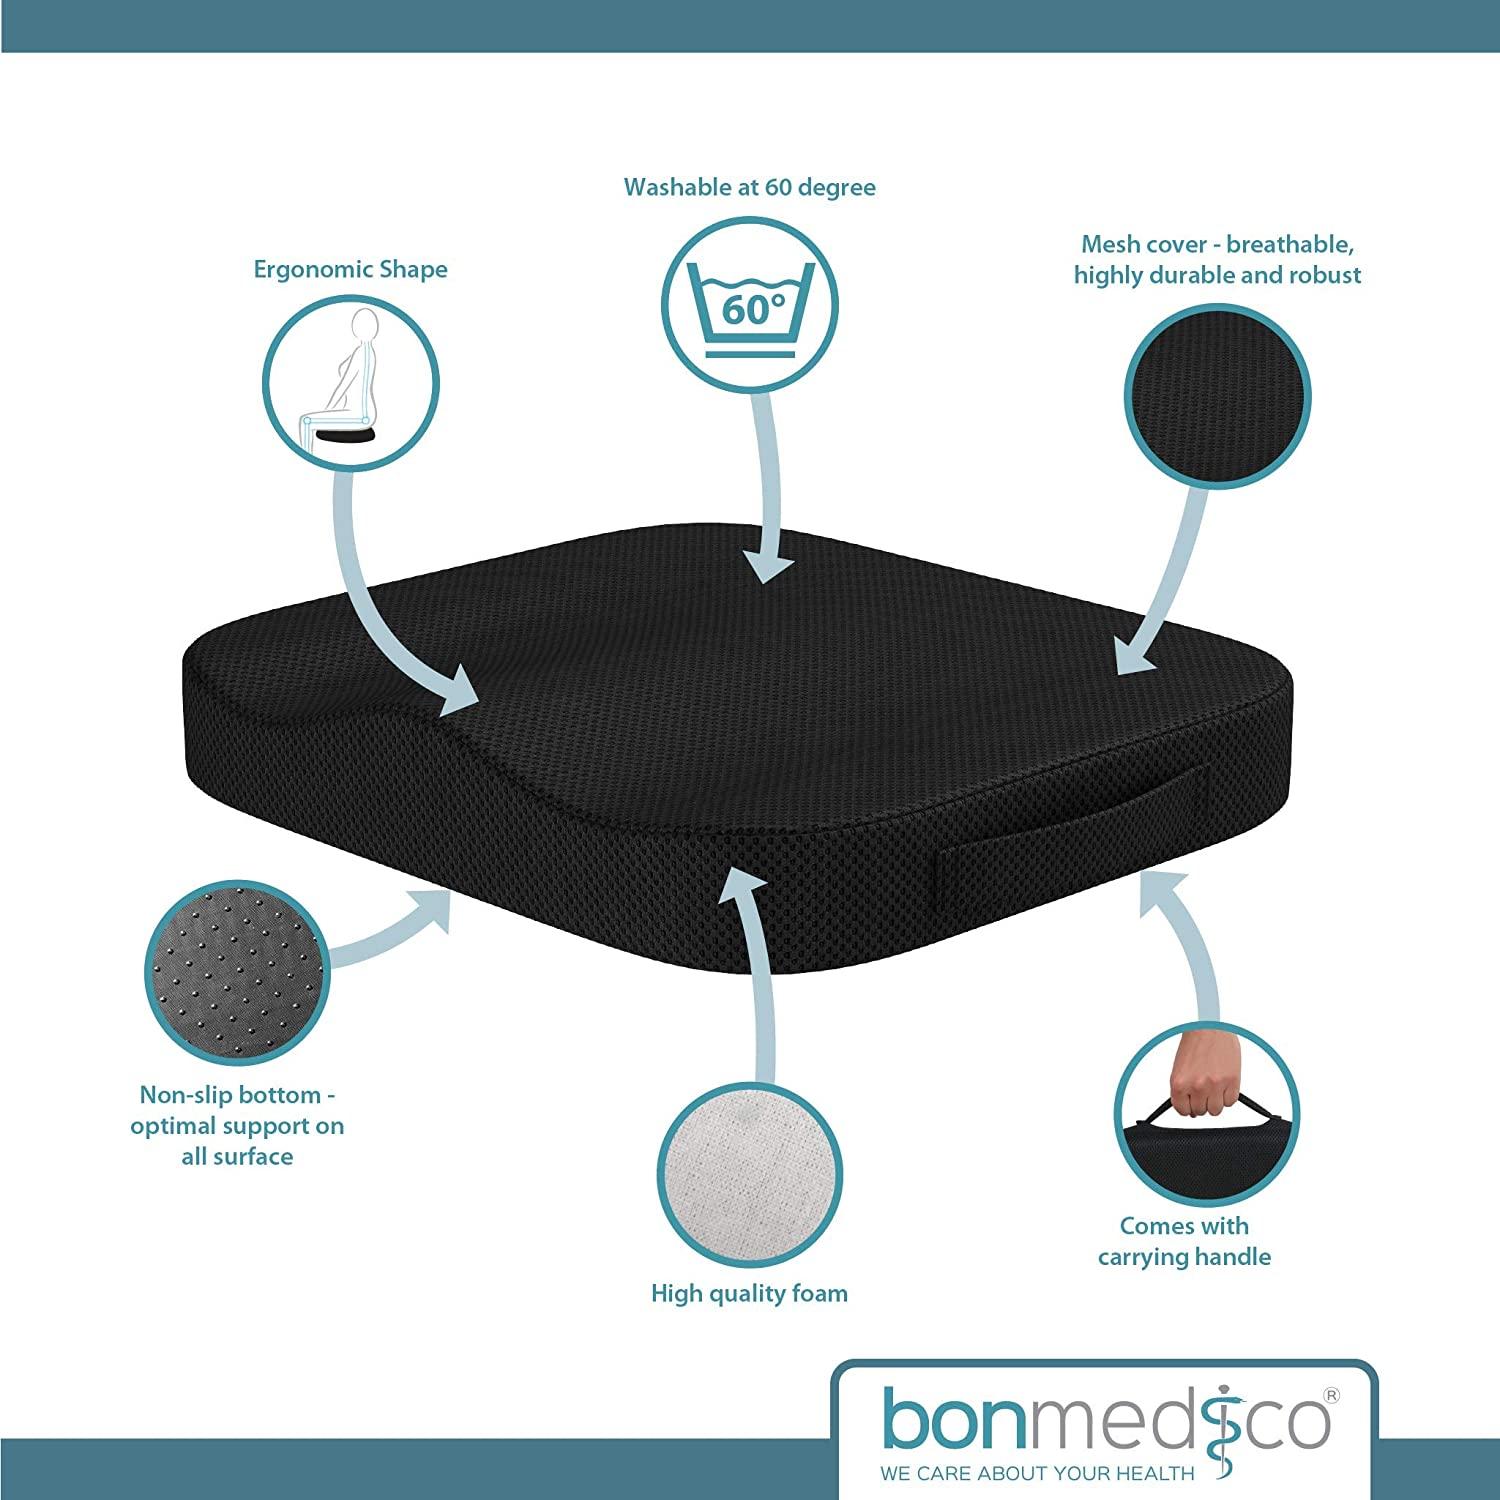 Amazon.com: Bonmedico Comfort - Cojín, S: Health & Personal Care